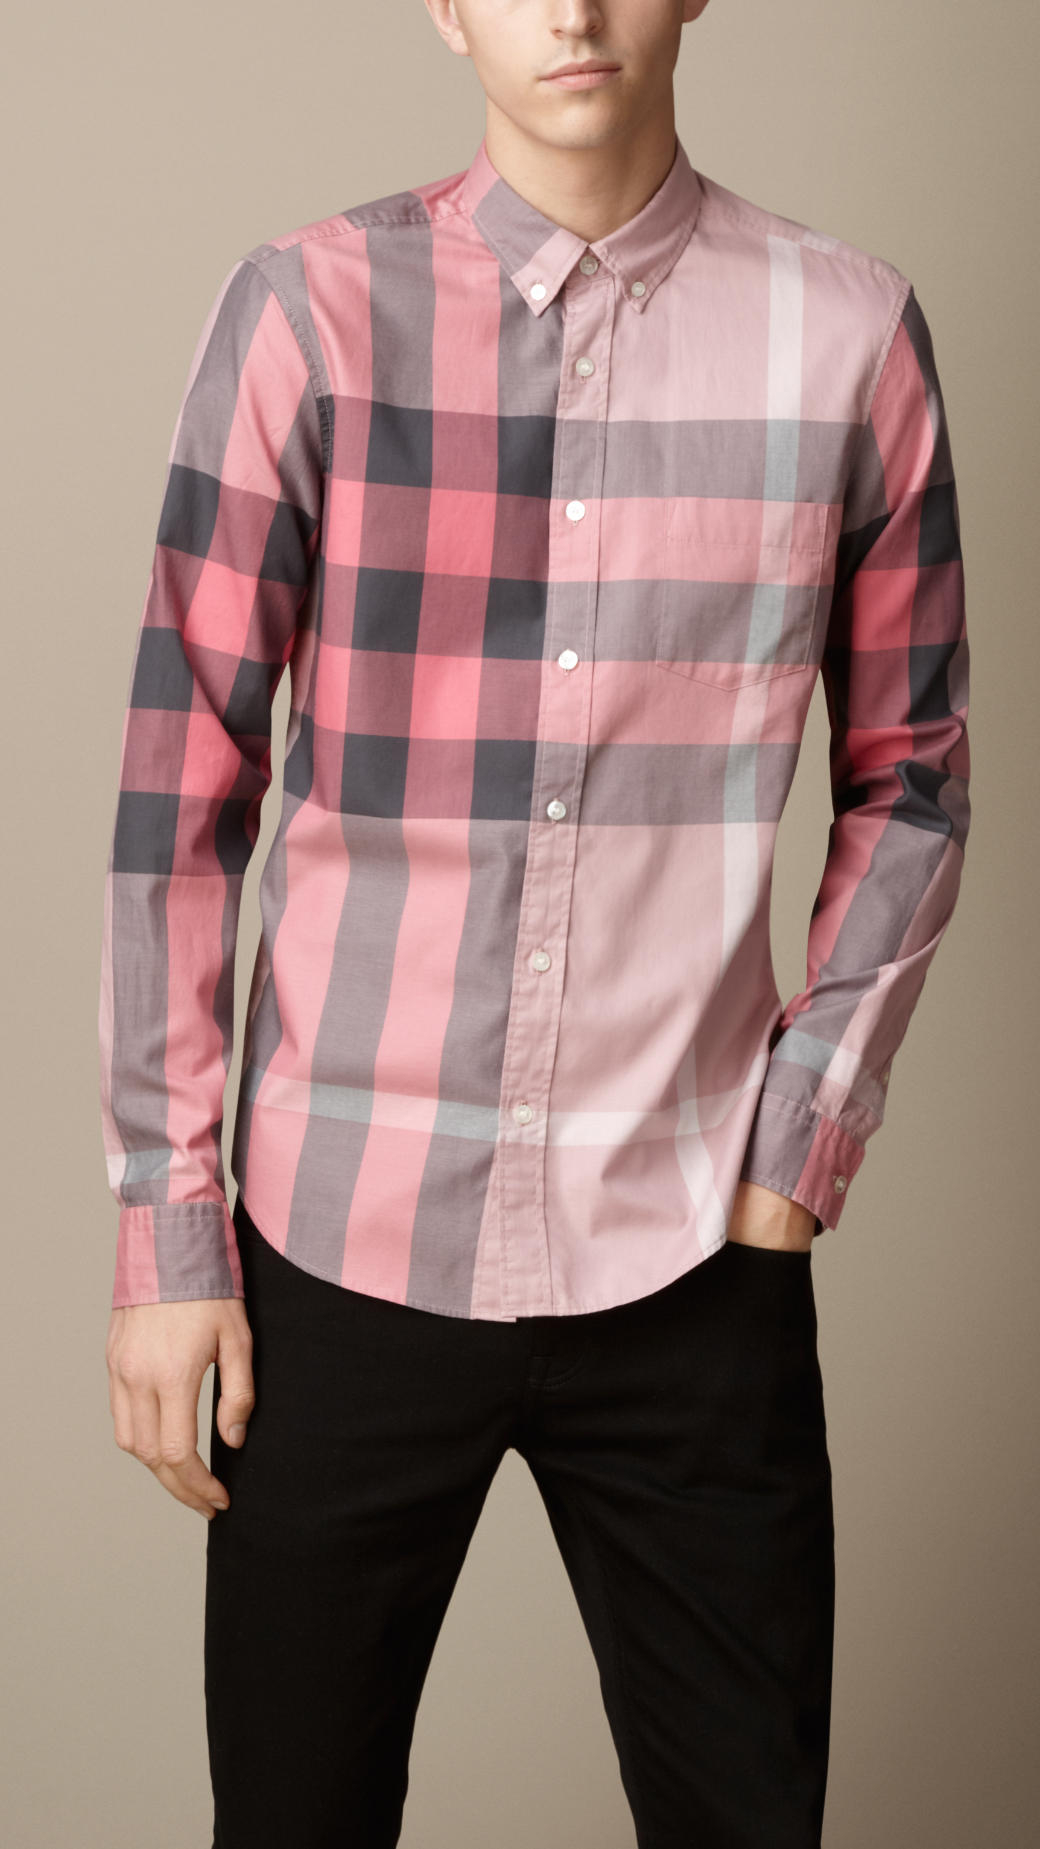 Burberry Giant Exploded Check Cotton Shirt In Pink For Men